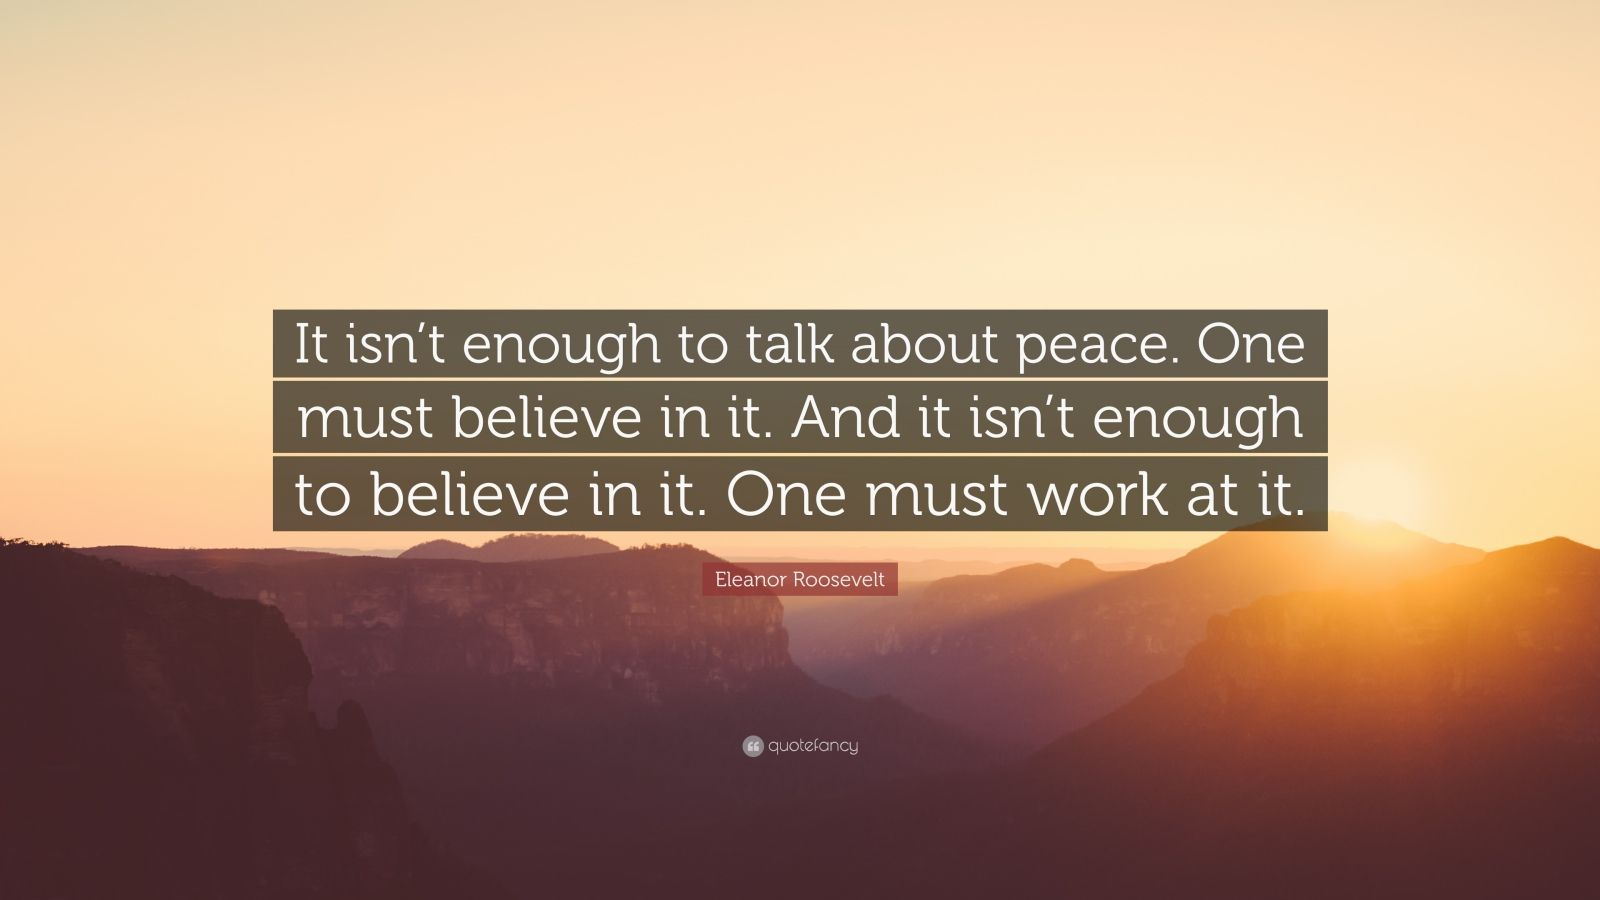 """Eleanor Roosevelt Quote: """"It isn't enough to talk about peace. One must believe in it. And it isn't enough to believe in it. One must work at it."""""""